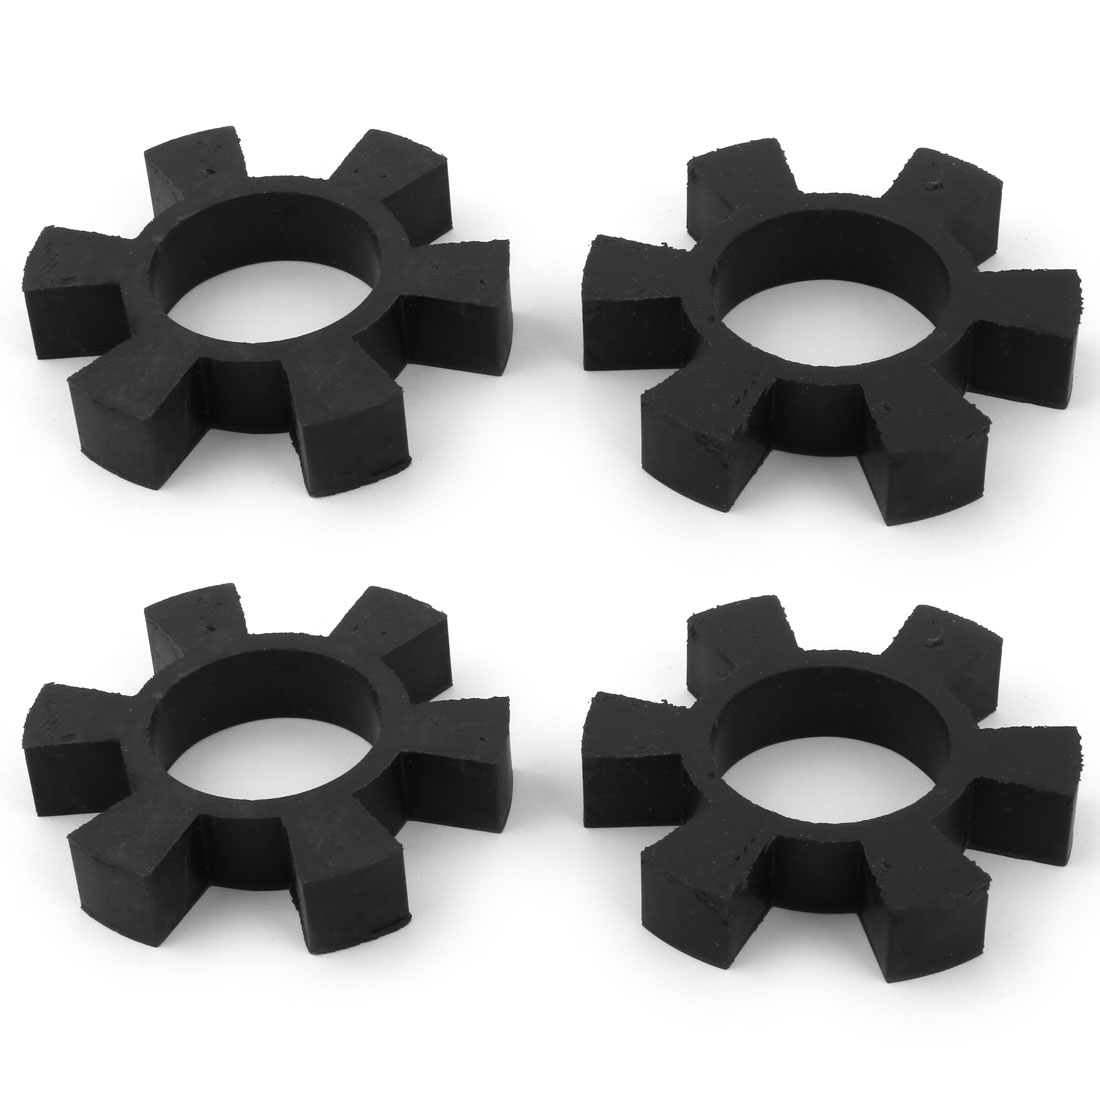 Rubber 6 Petal Coupling Buffer Drive Shaft Center Spider Coupler Damper Black 9.3cm Dia 4pcs